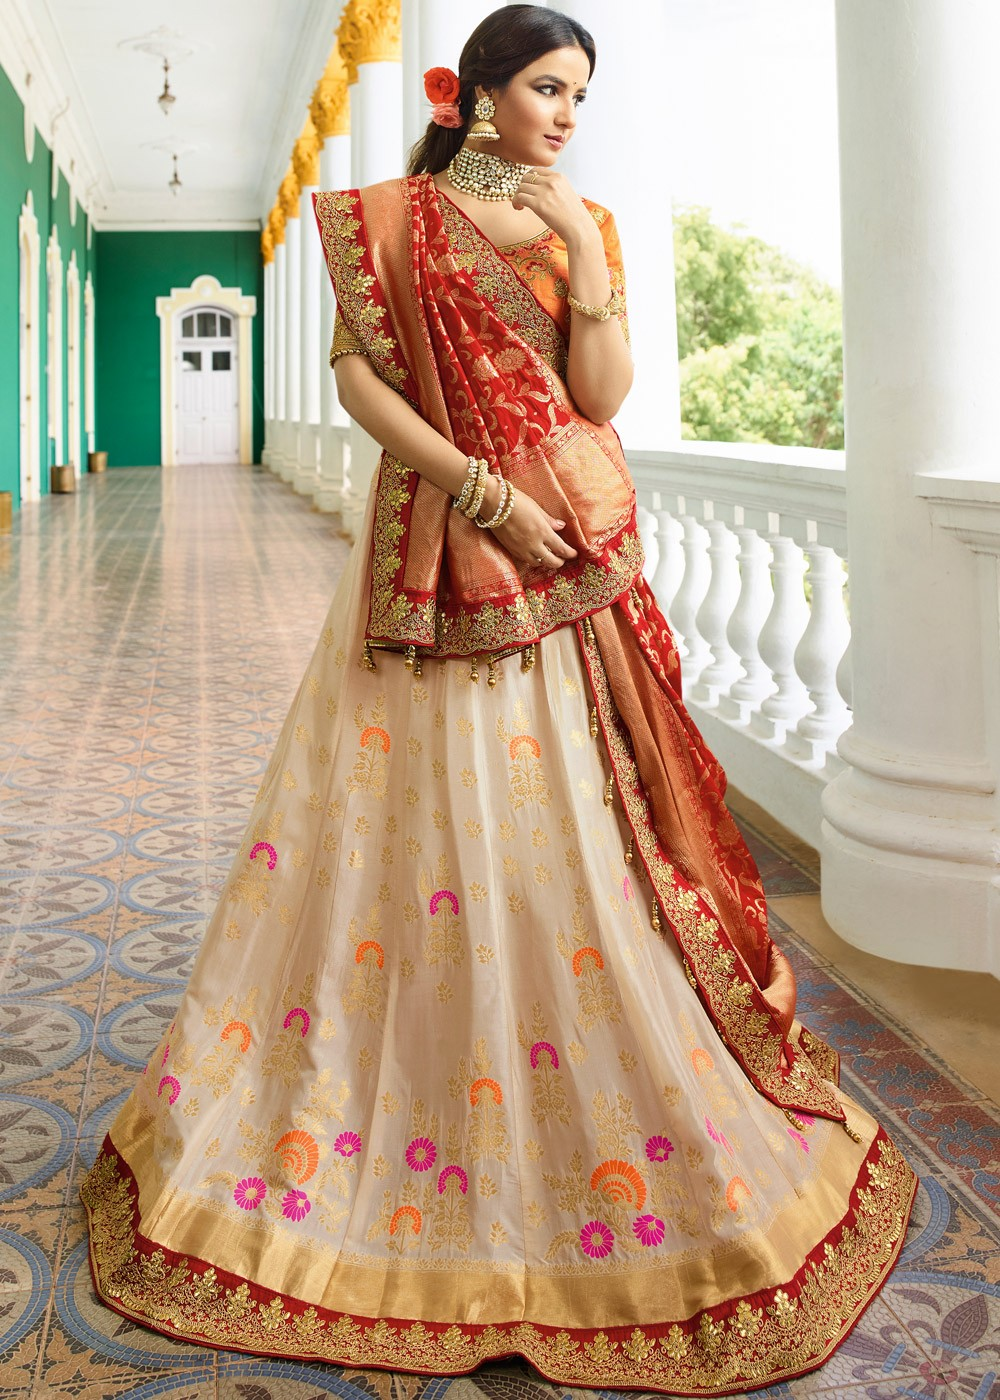 58d2df52f8 Pure Silk Lehenga Choli in Cream Color - Haya Creations